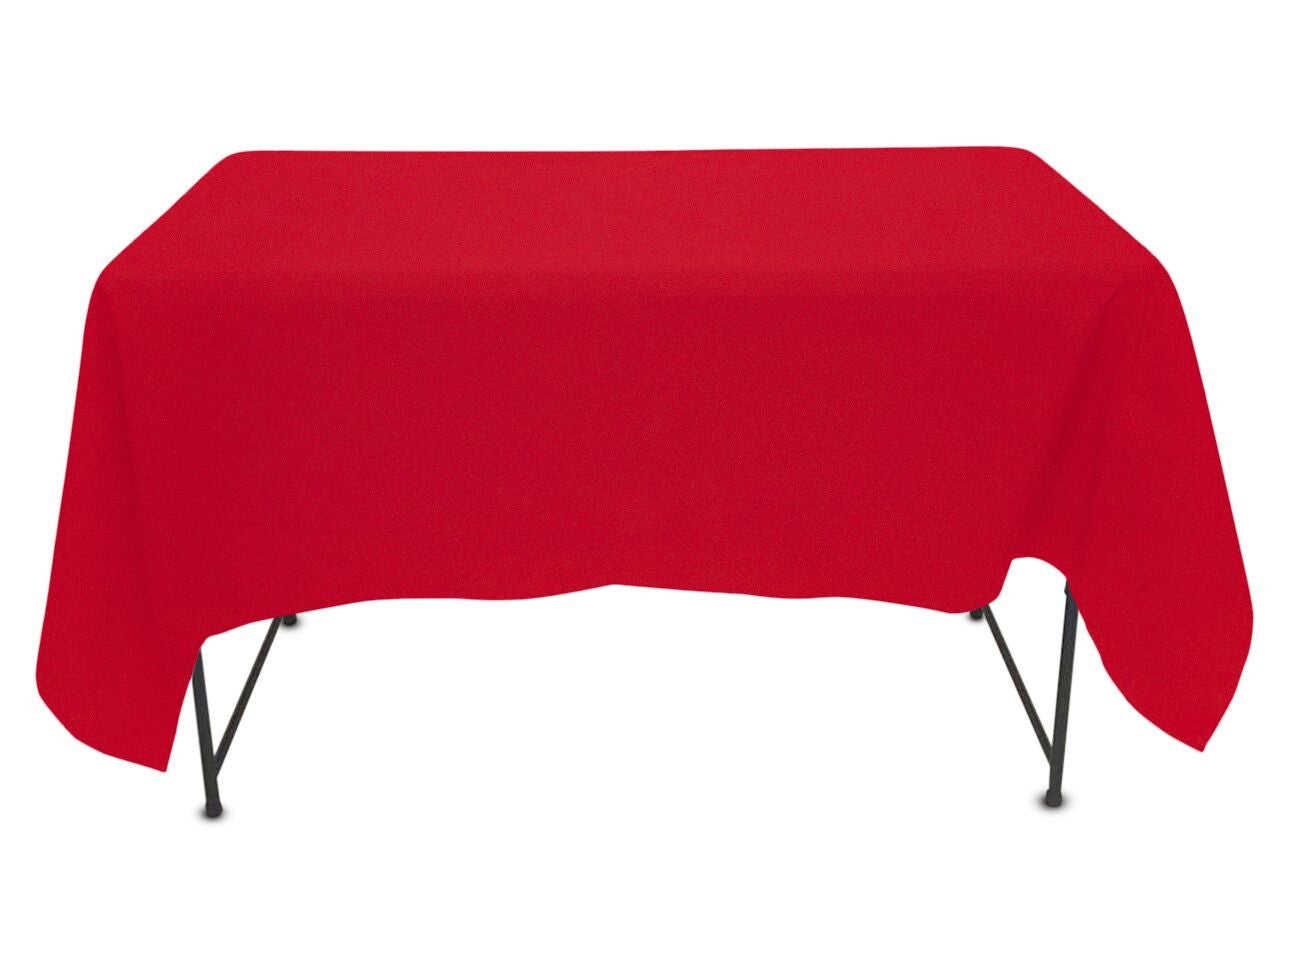 54u0027u0027 X 80u0027u0027 Tablecloth